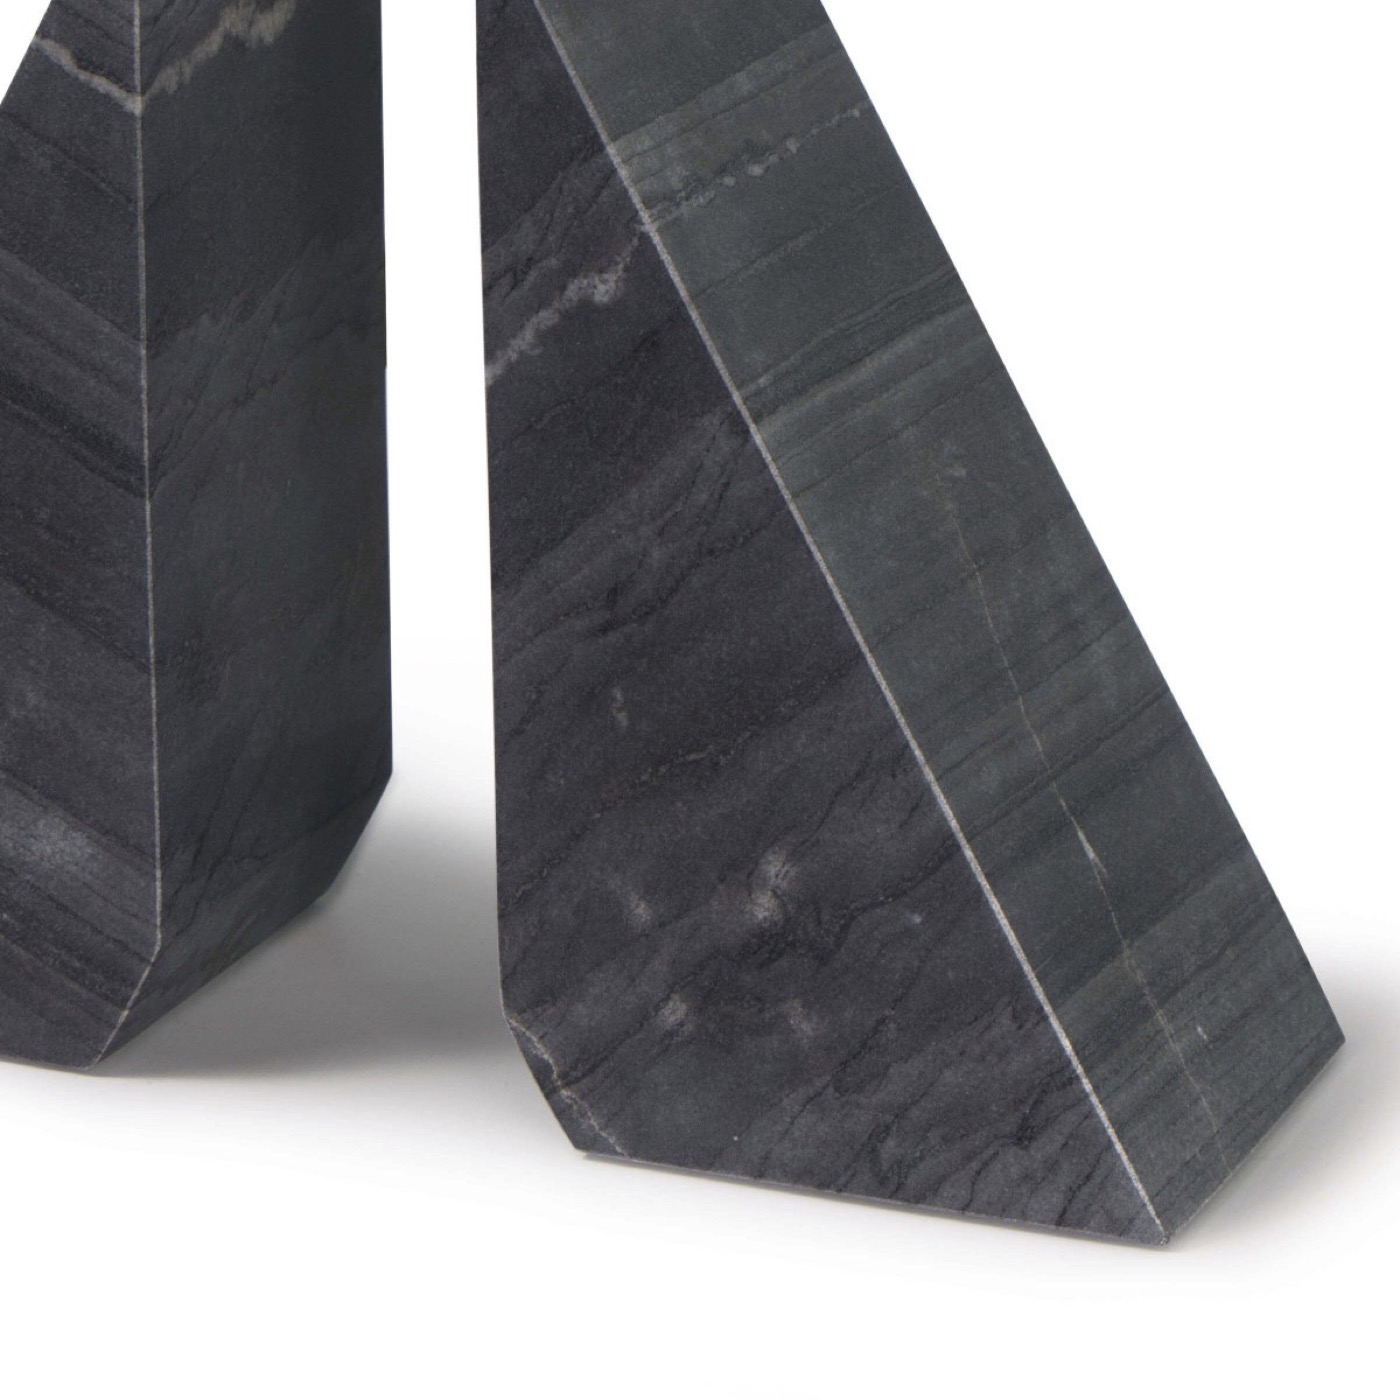 Othello Marble Bookends | Black